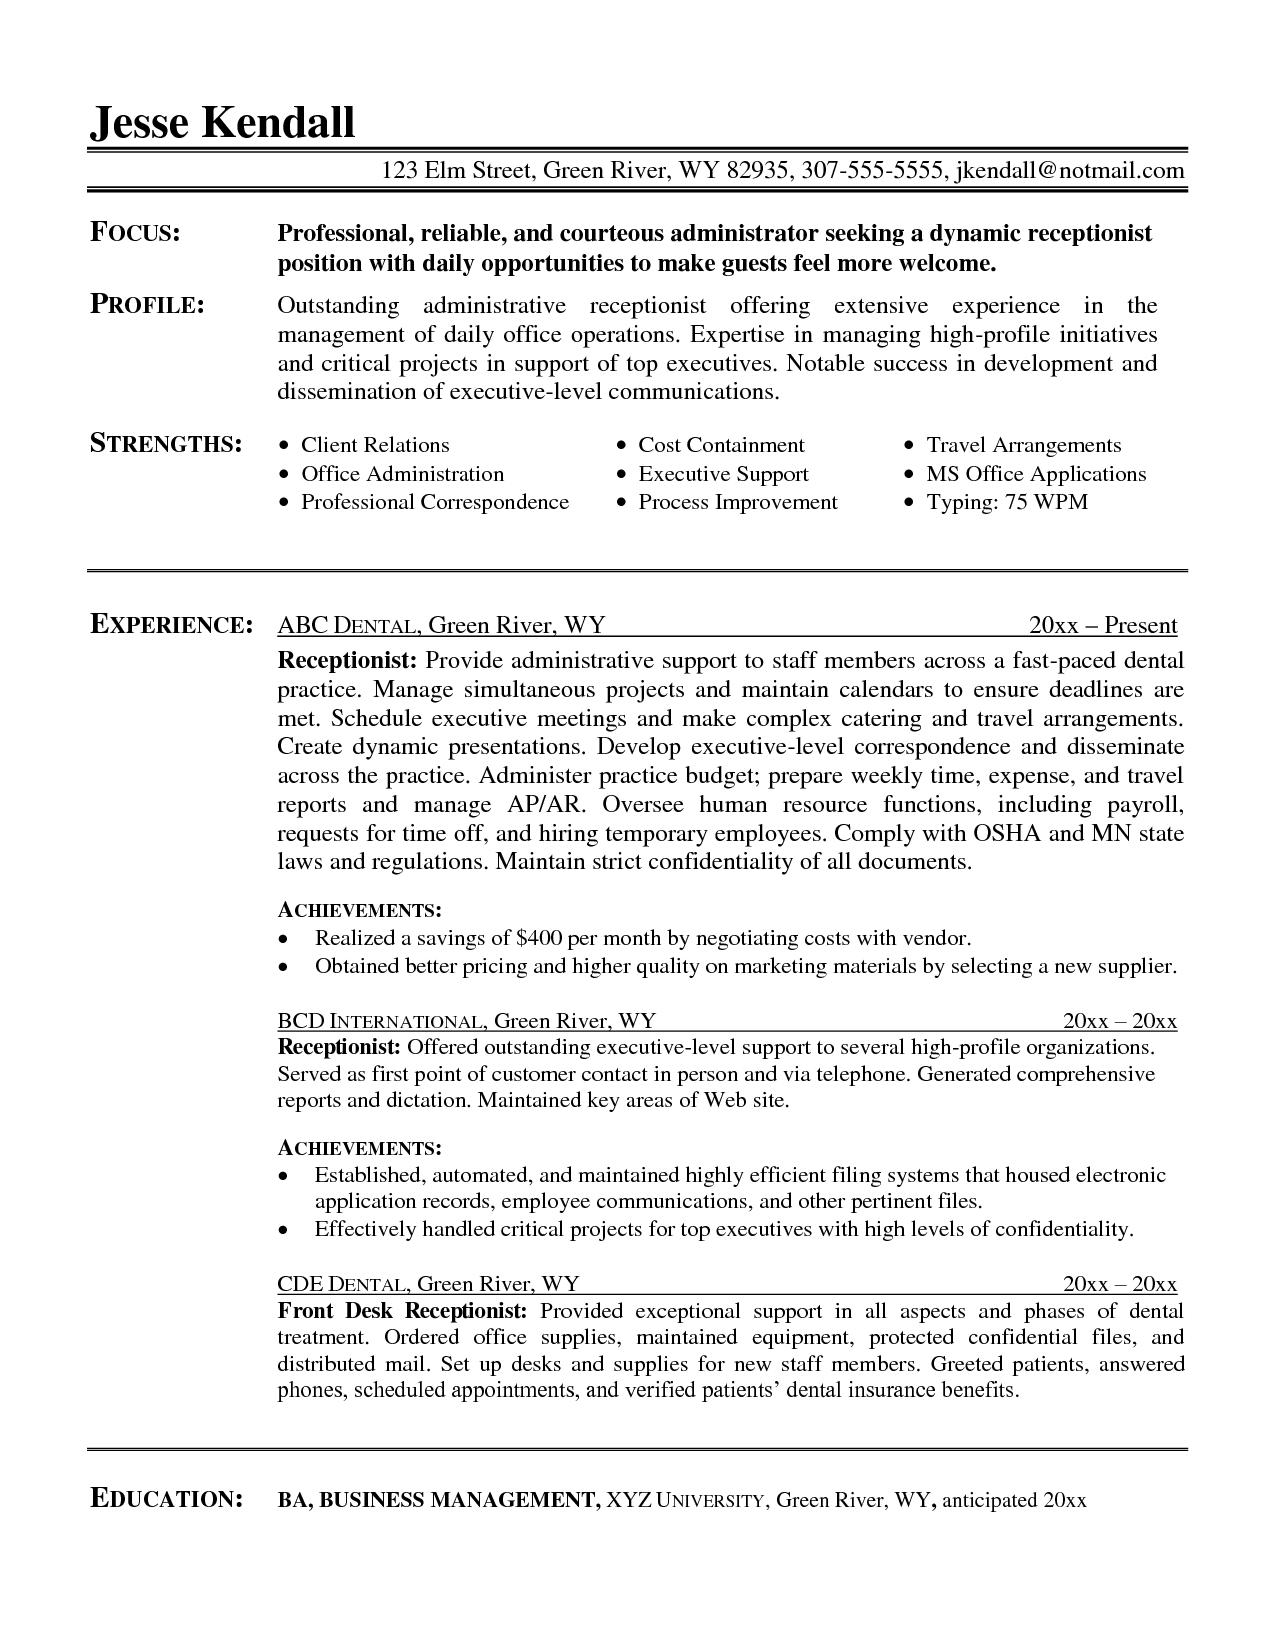 Free Example Resume Sample Receptionist Resume Example Resume Job Resume Samples